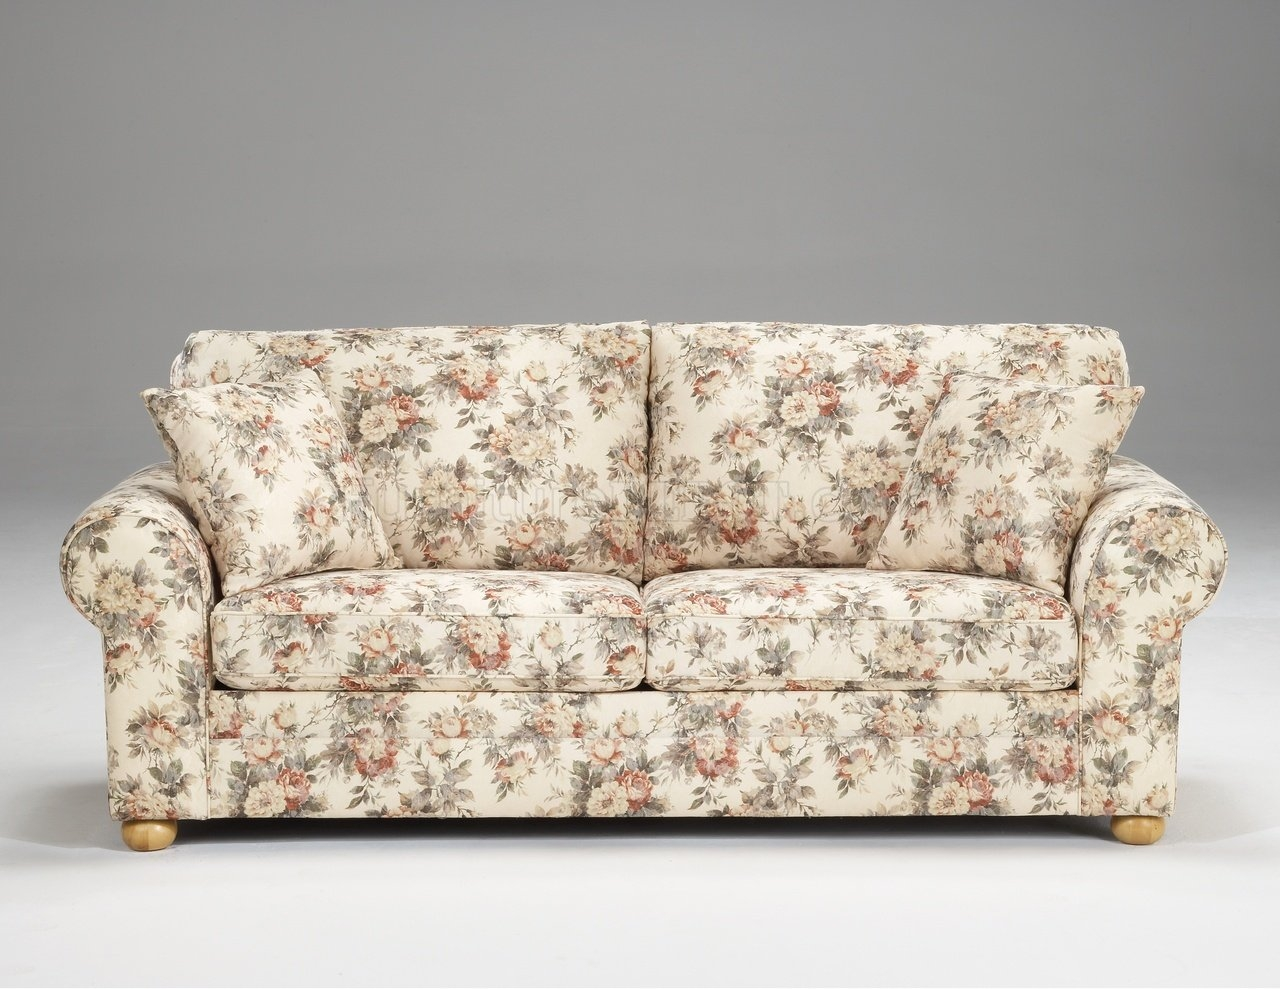 Flower Print Sofa 1970 Floral Sofa Flower Print Couch Suzy Q Throughout Chintz Floral Sofas (Image 9 of 15)